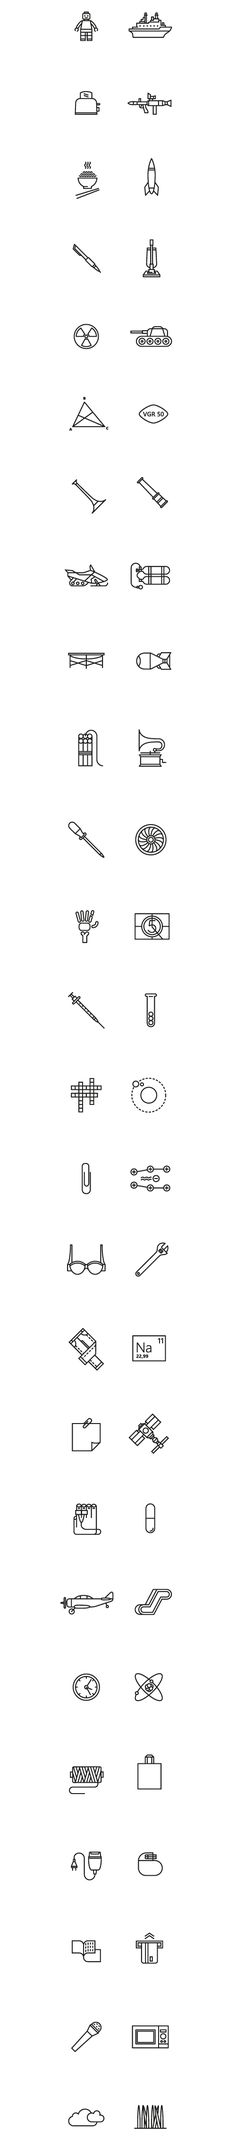 Pictograms for Esquire Russia on Behance